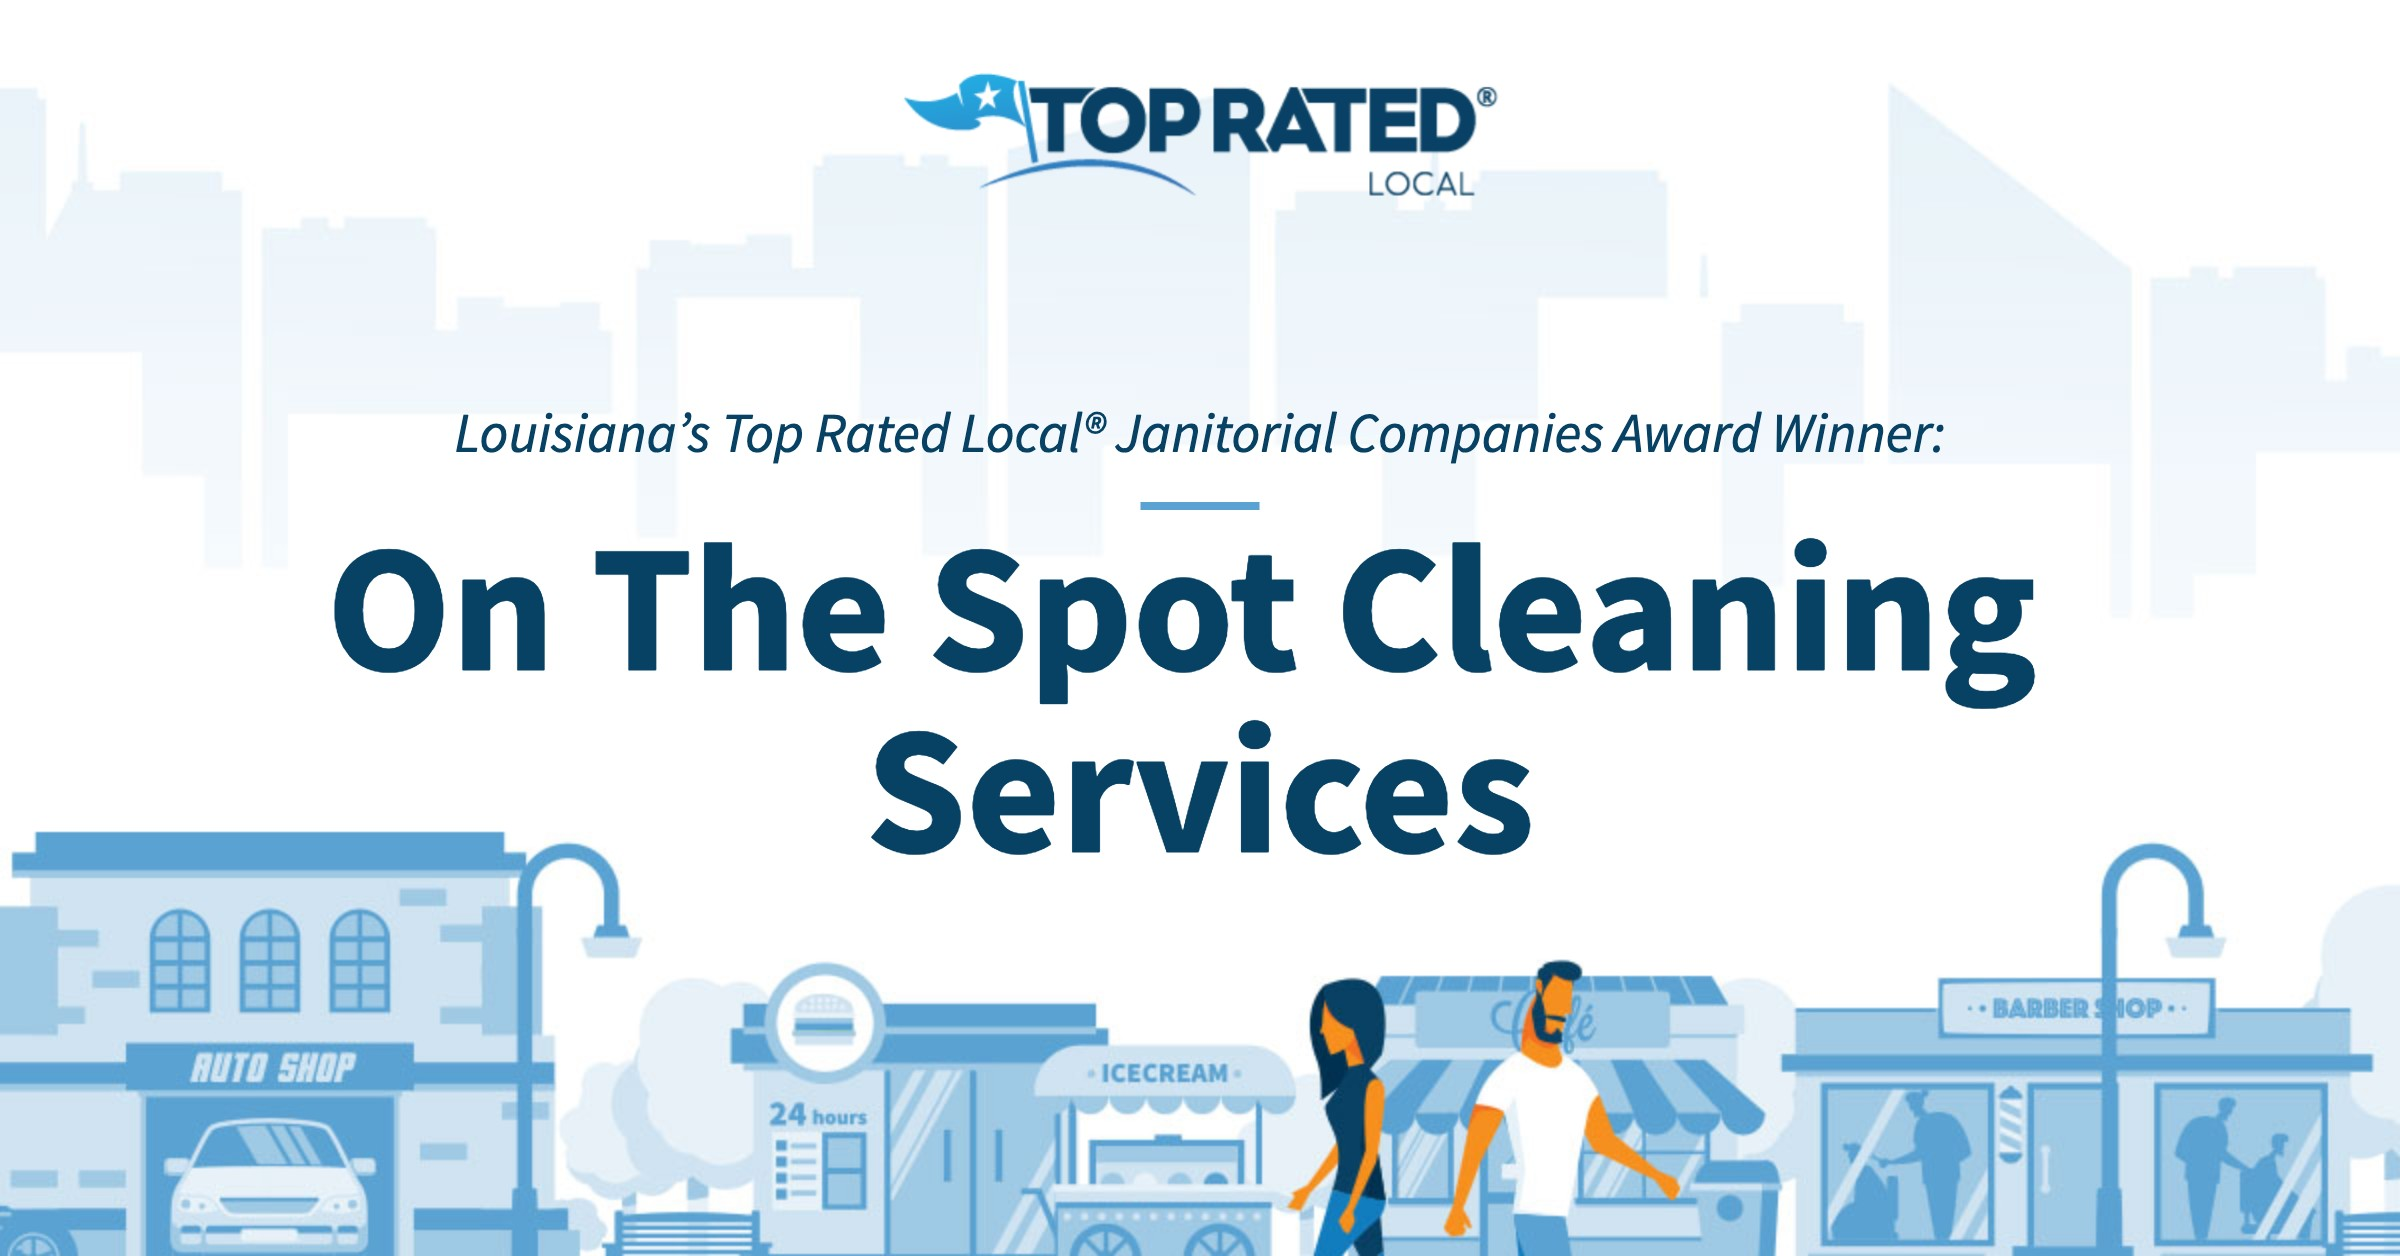 Louisiana's Top Rated Local® Janitorial Companies Award Winner: On The Spot Cleaning Services